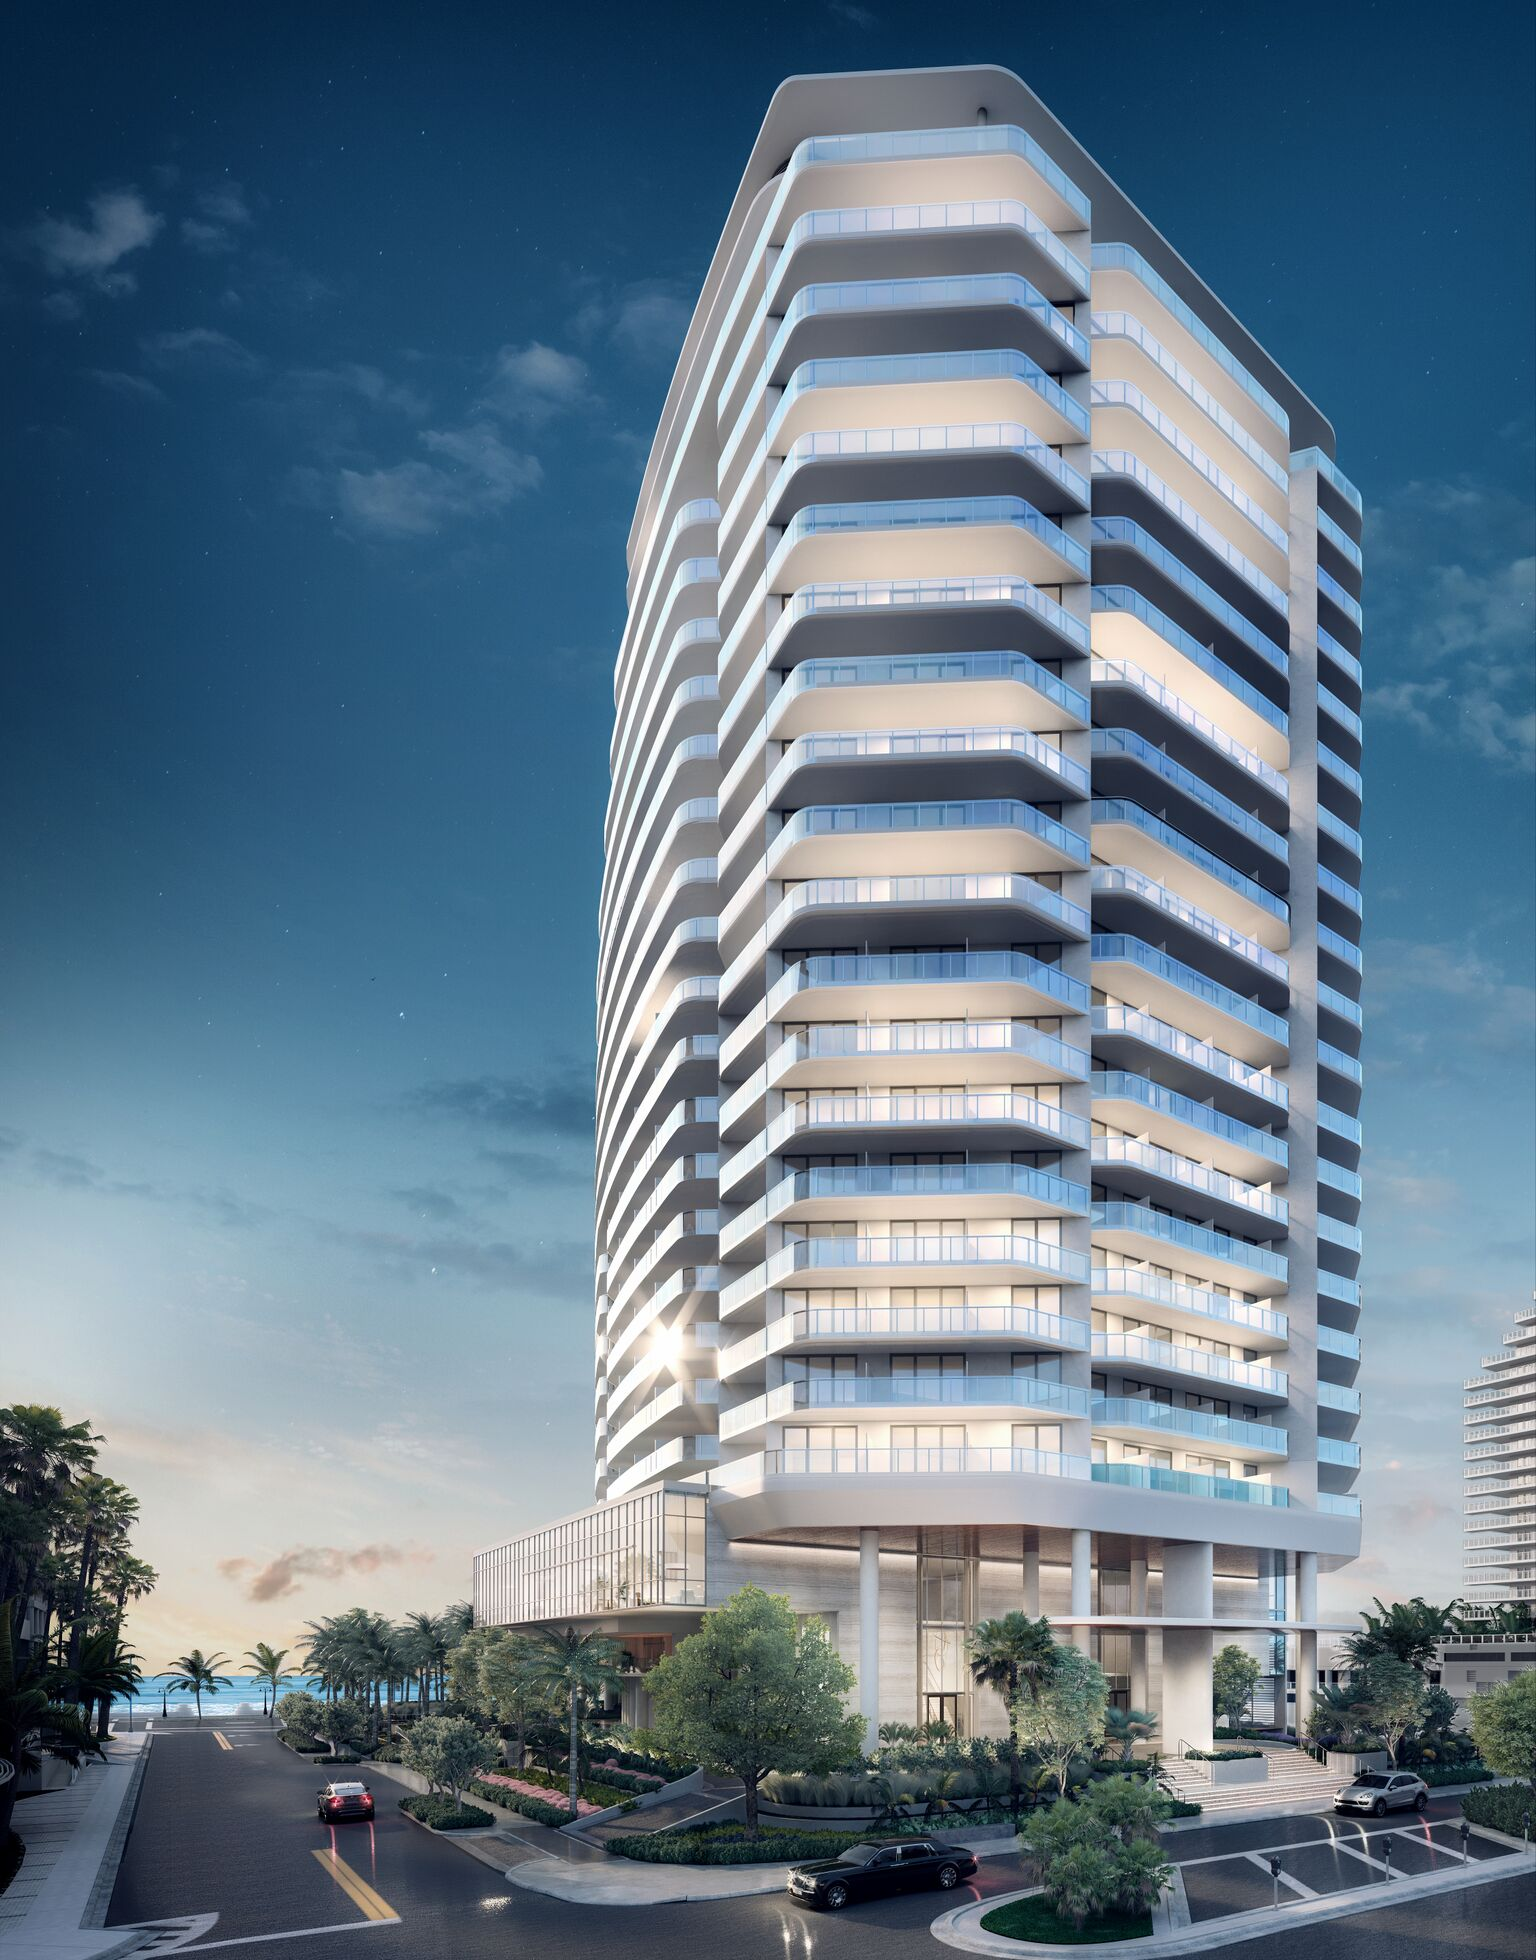 skyview image of Four Seasons Fort Lauderdale